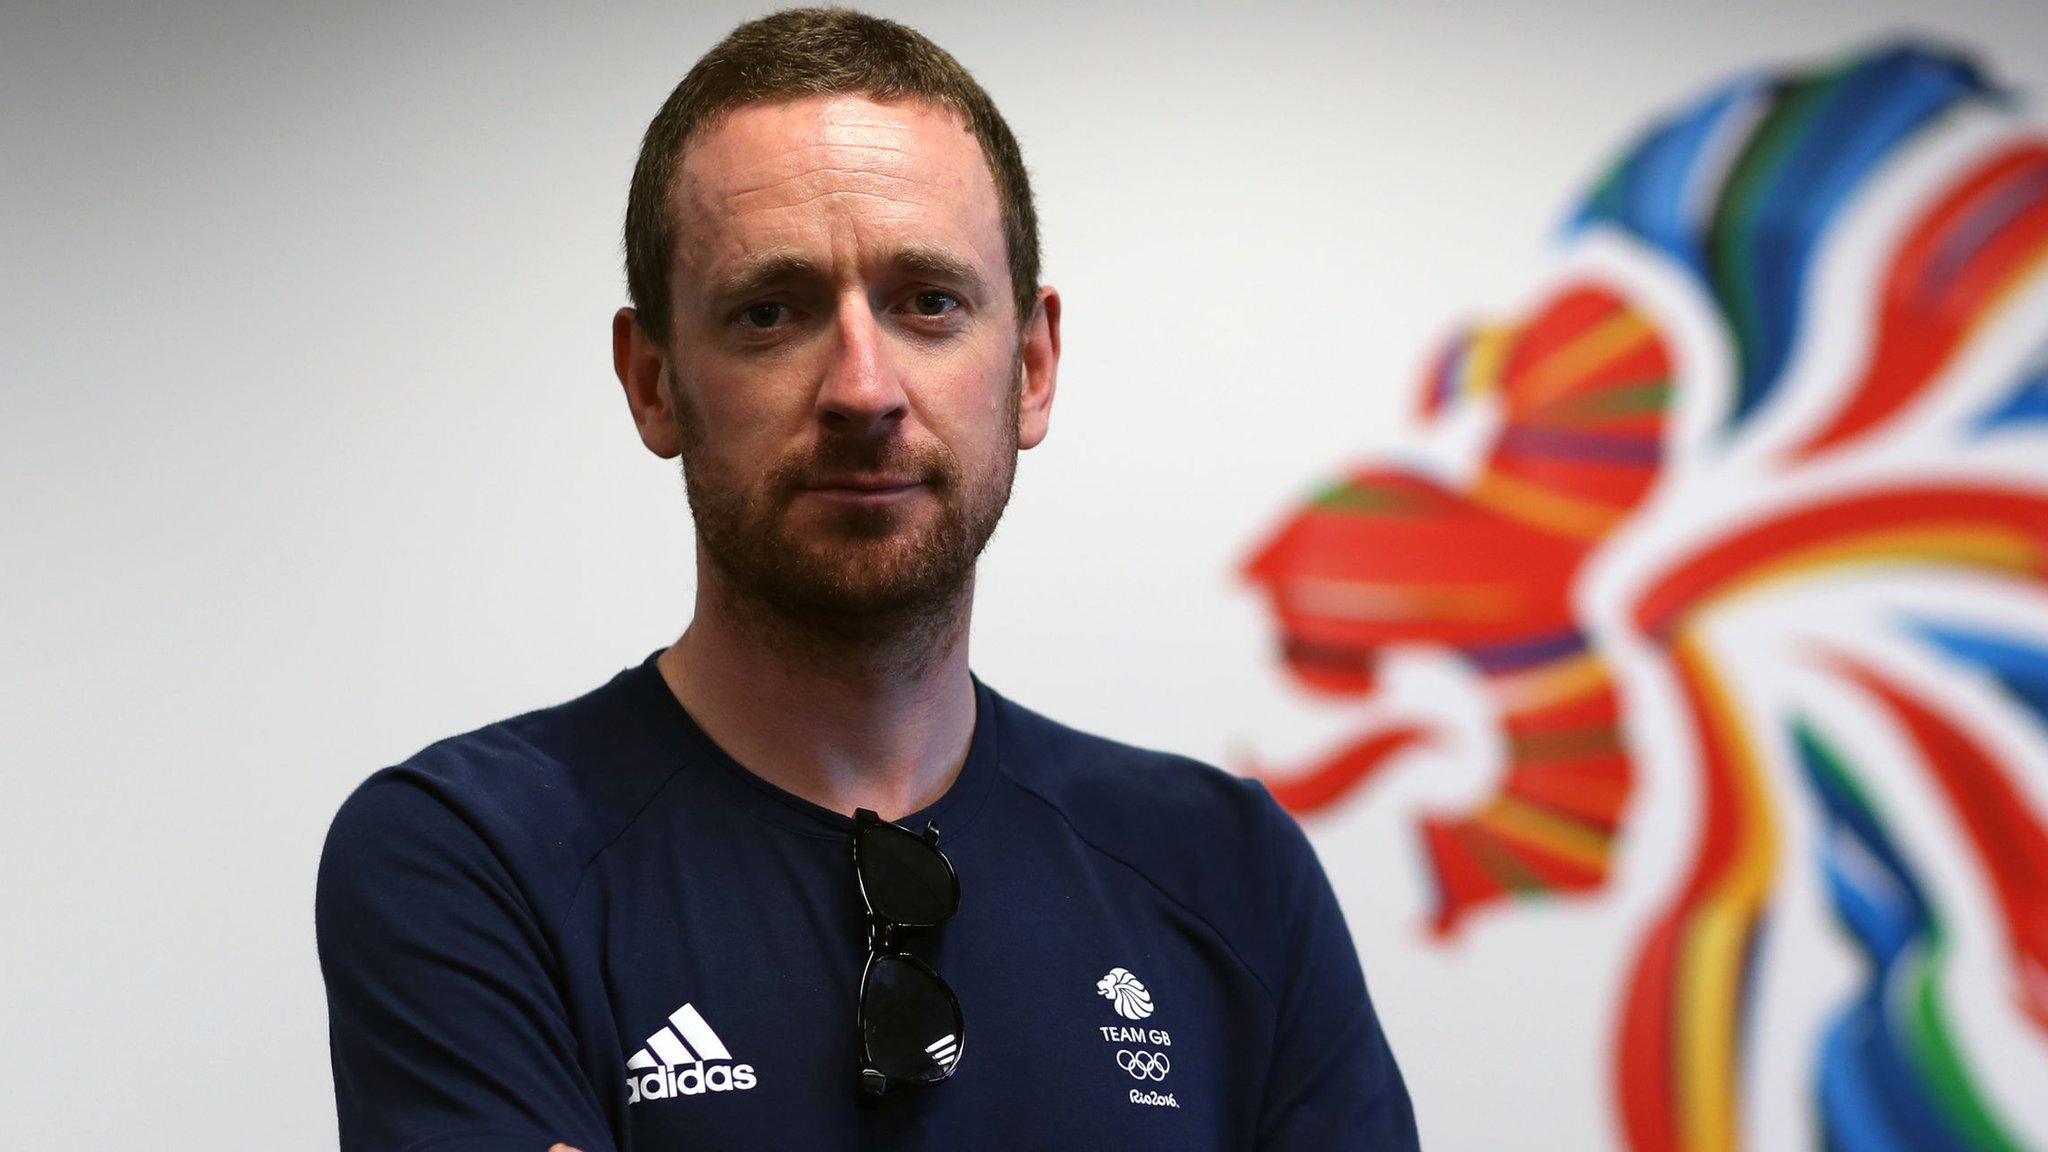 British Cycling chiefs to face MPs over TUEs